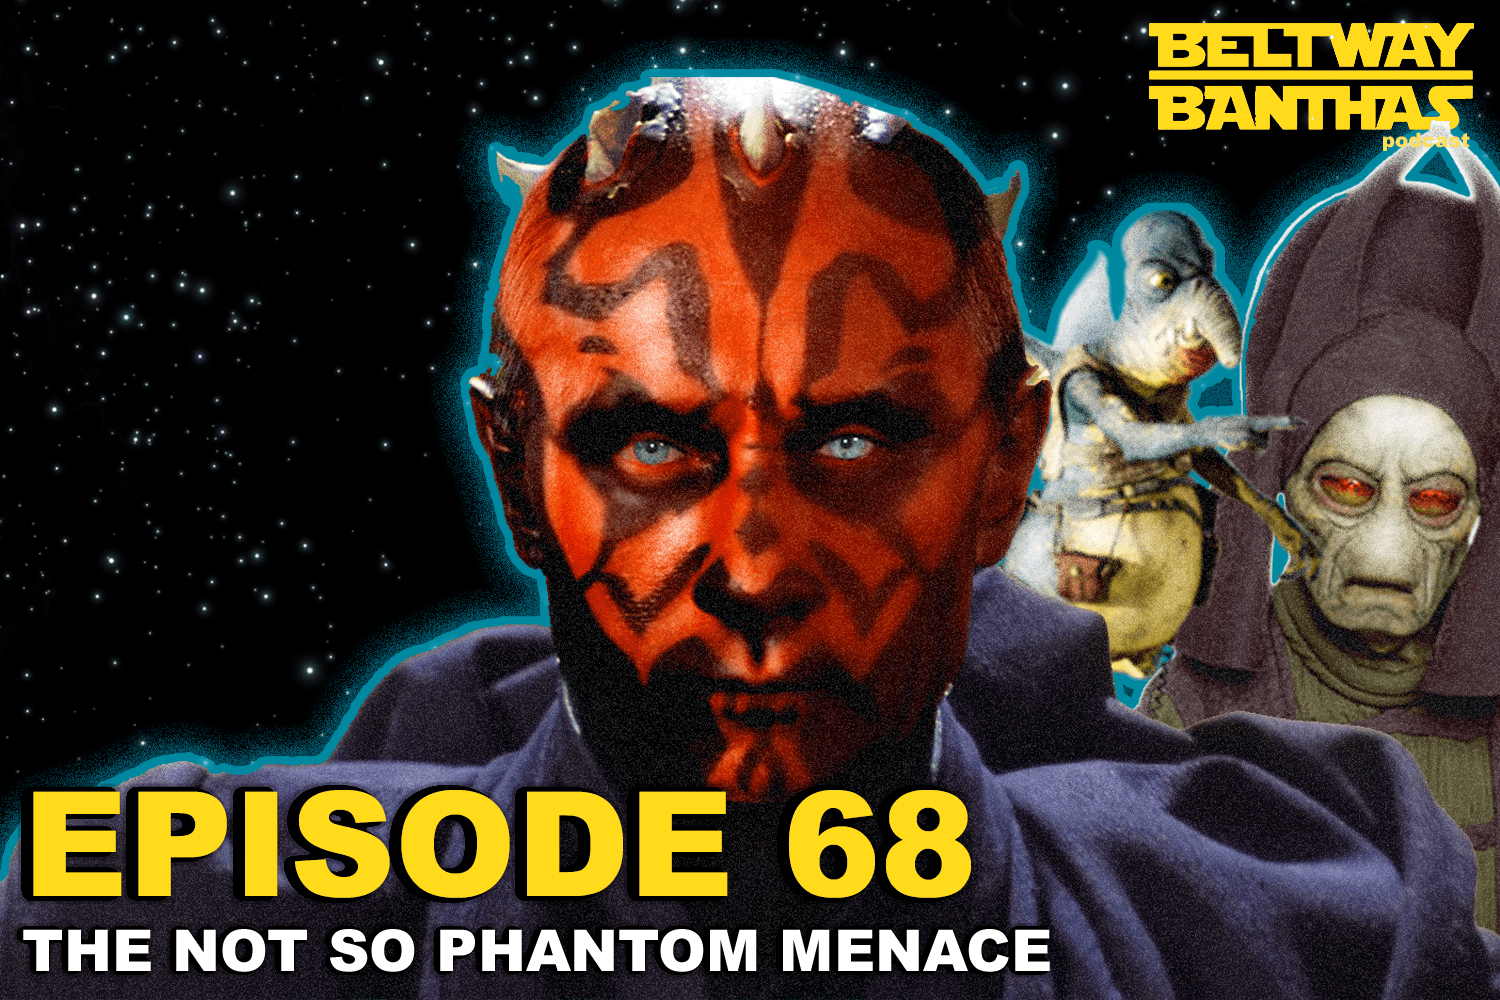 Beltway Banthas #68: The Not So Phantom Menace